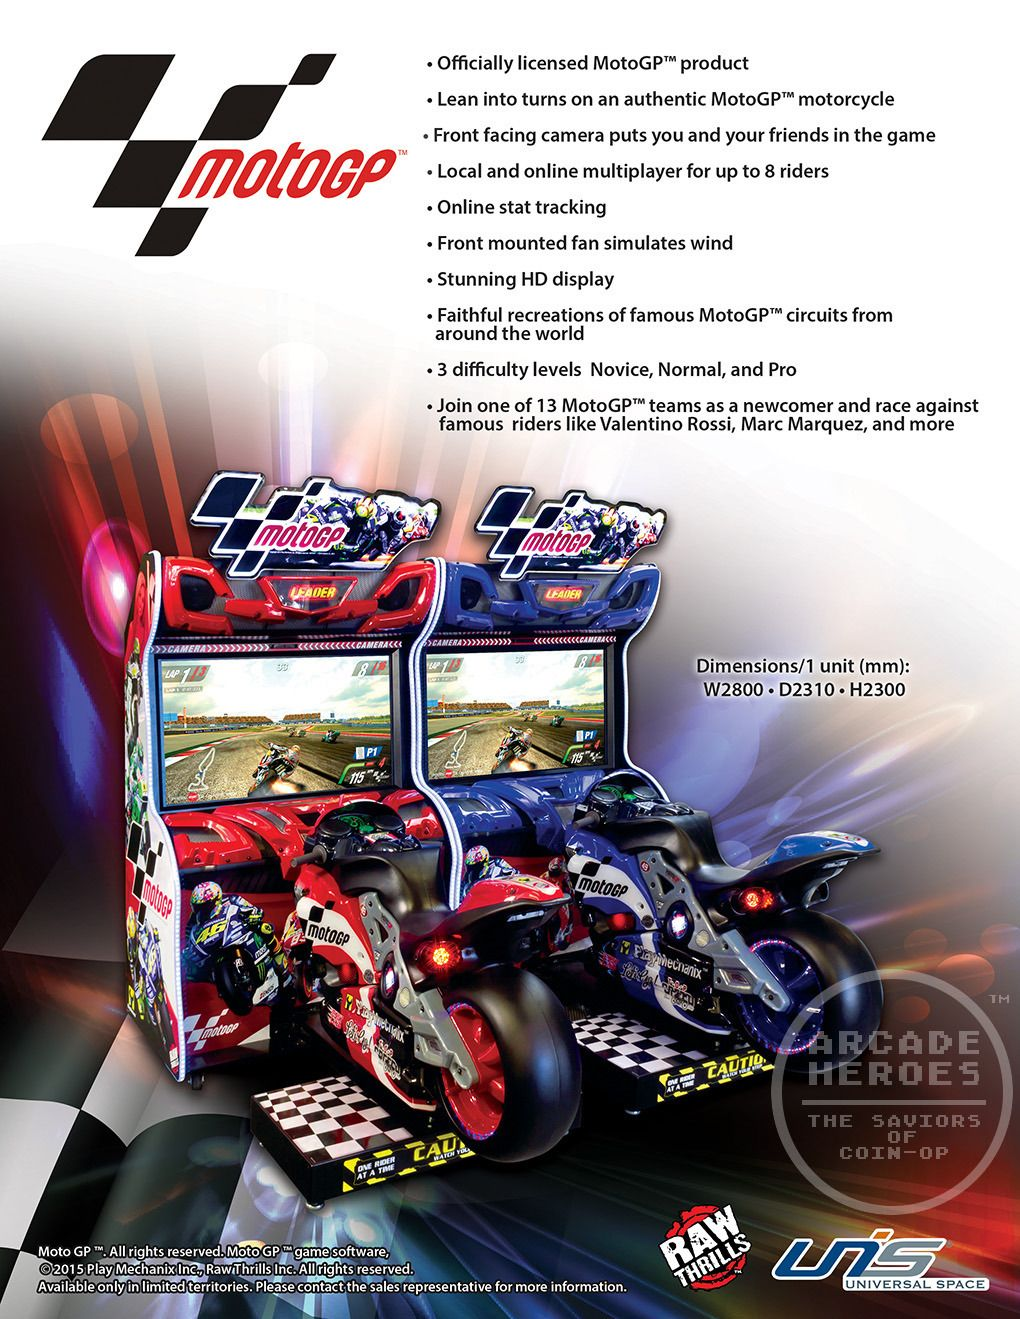 The Next Racing Game From Play Mechanix Raw Thrills Motogp Arcade Heroes Racing Games Motogp Arcade